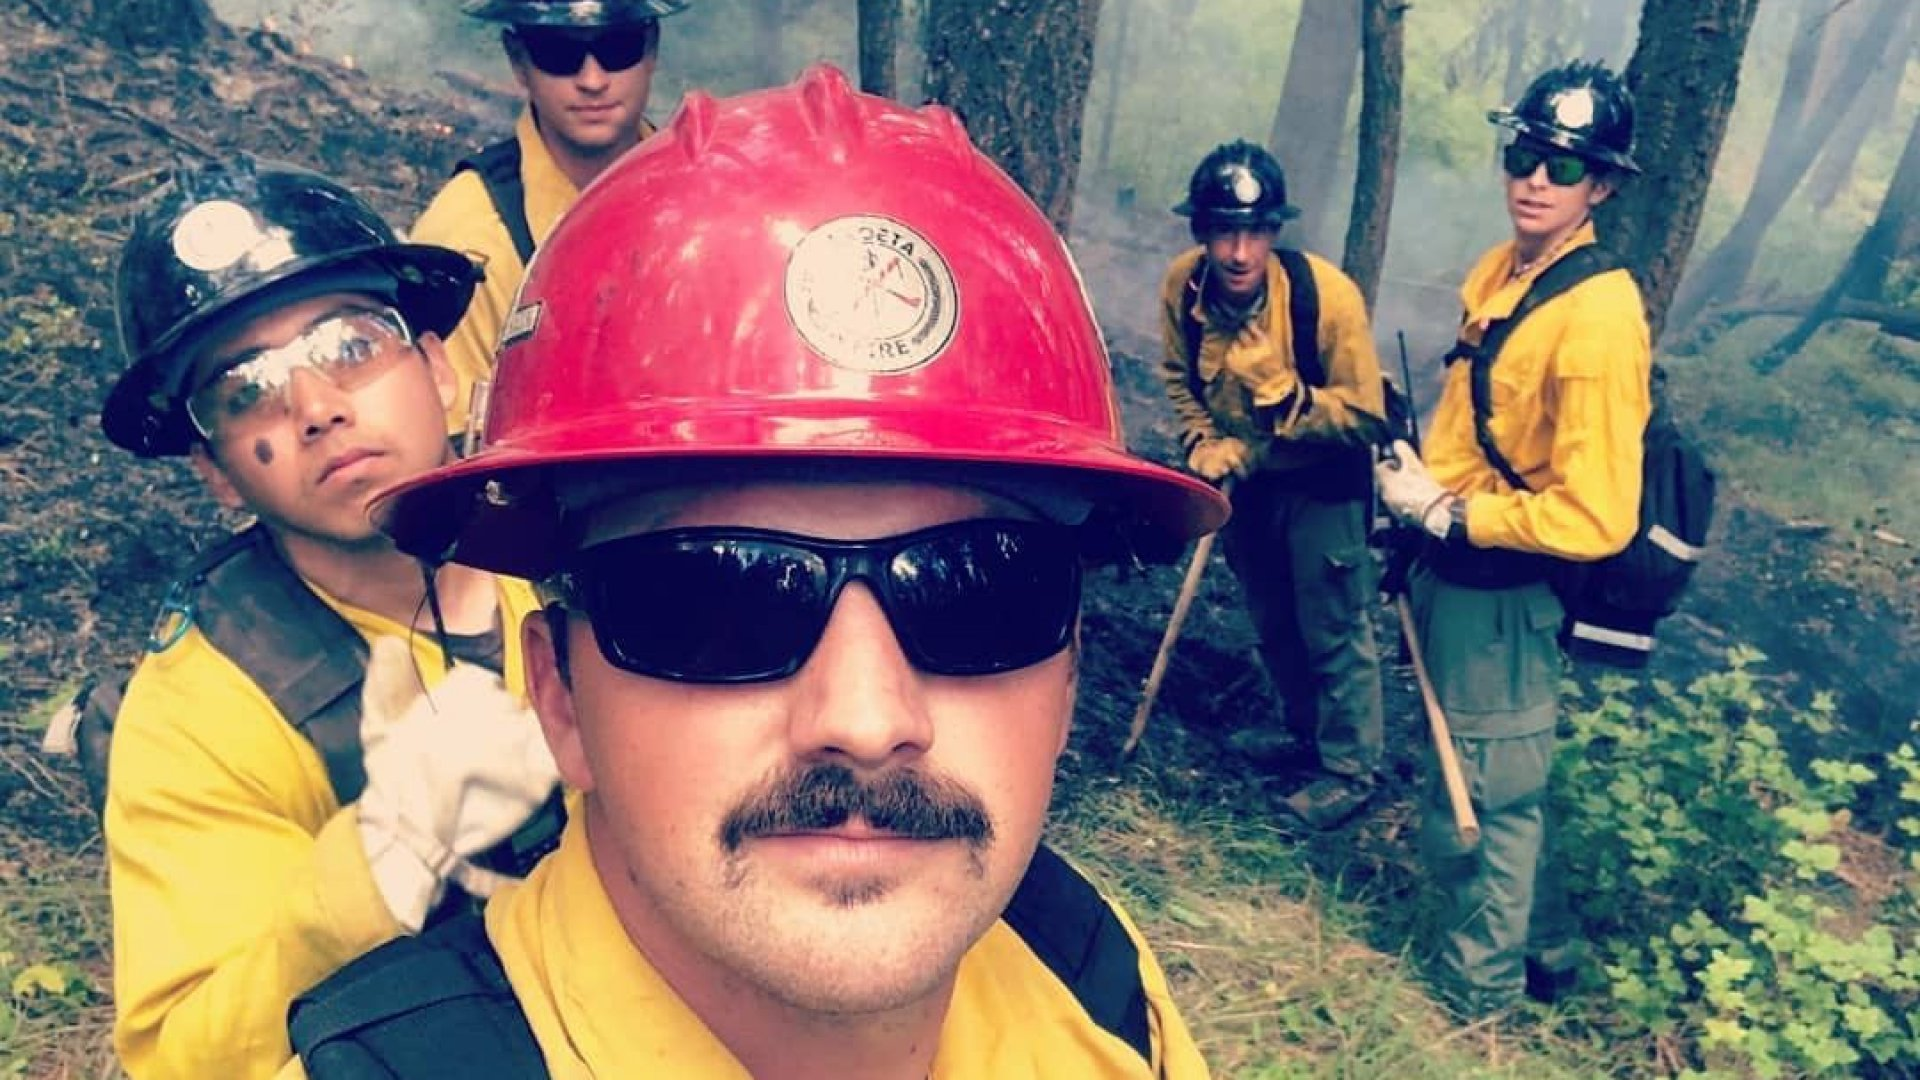 Members of the Chloeta team pictured in a fire response zone near Libby, Montana.